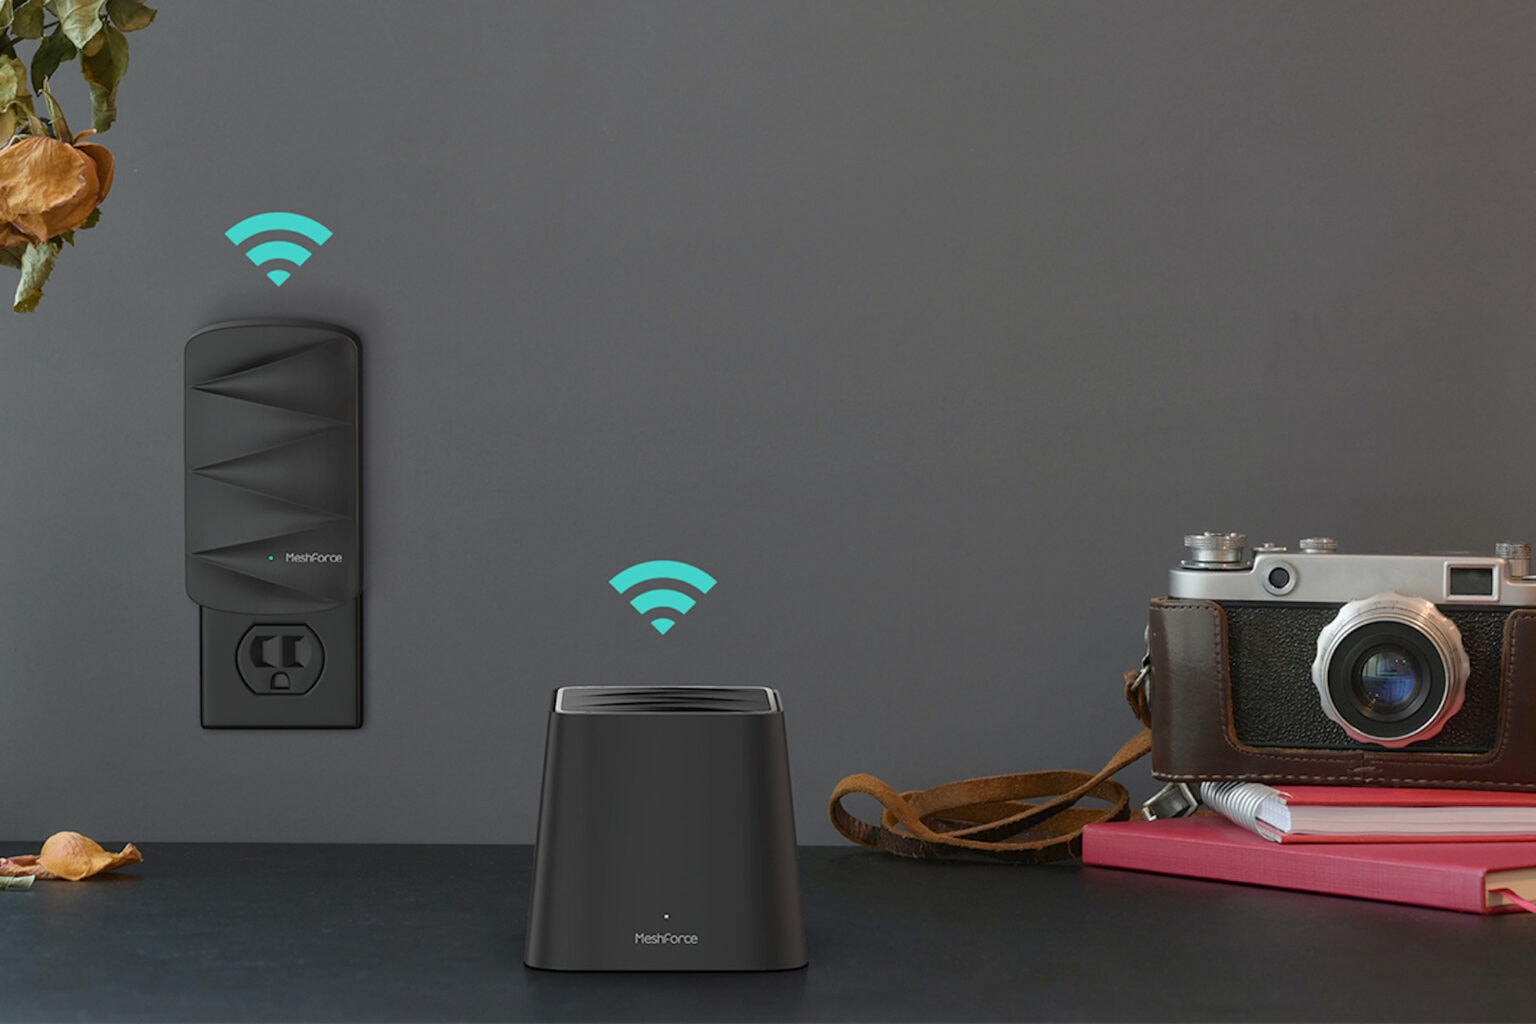 Get the best connection with these high-end routers.